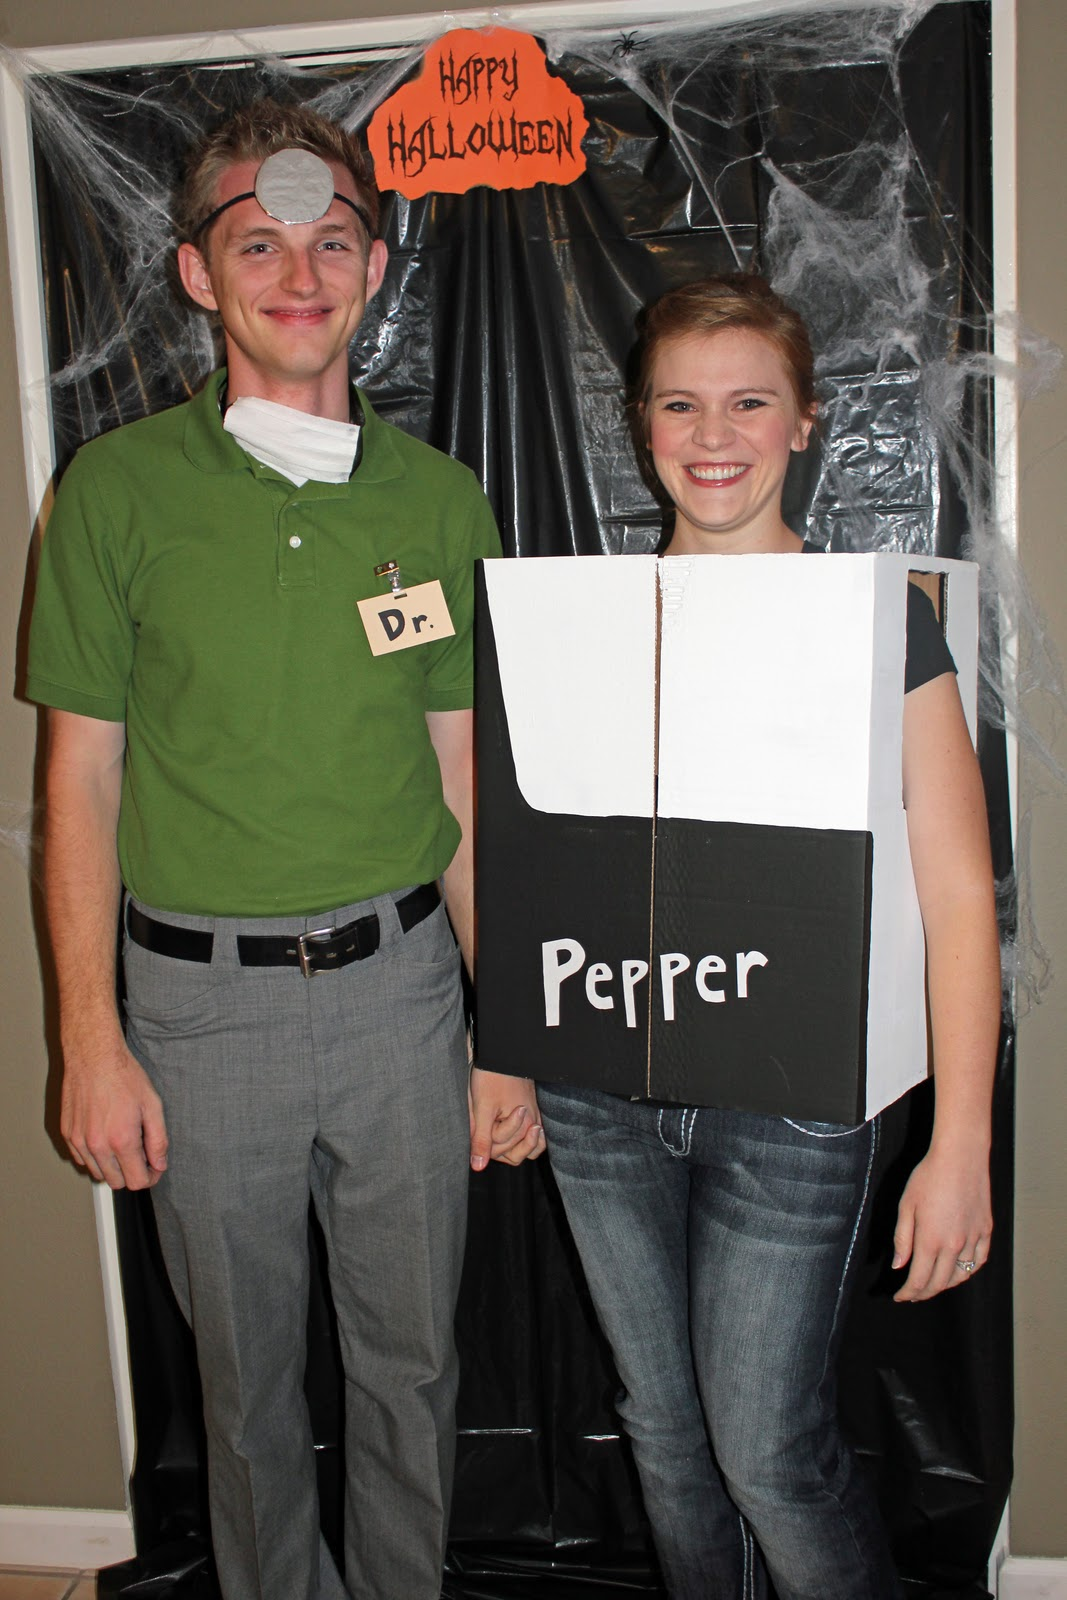 Puny Halloween Costume: Dr. Pepper couple costume